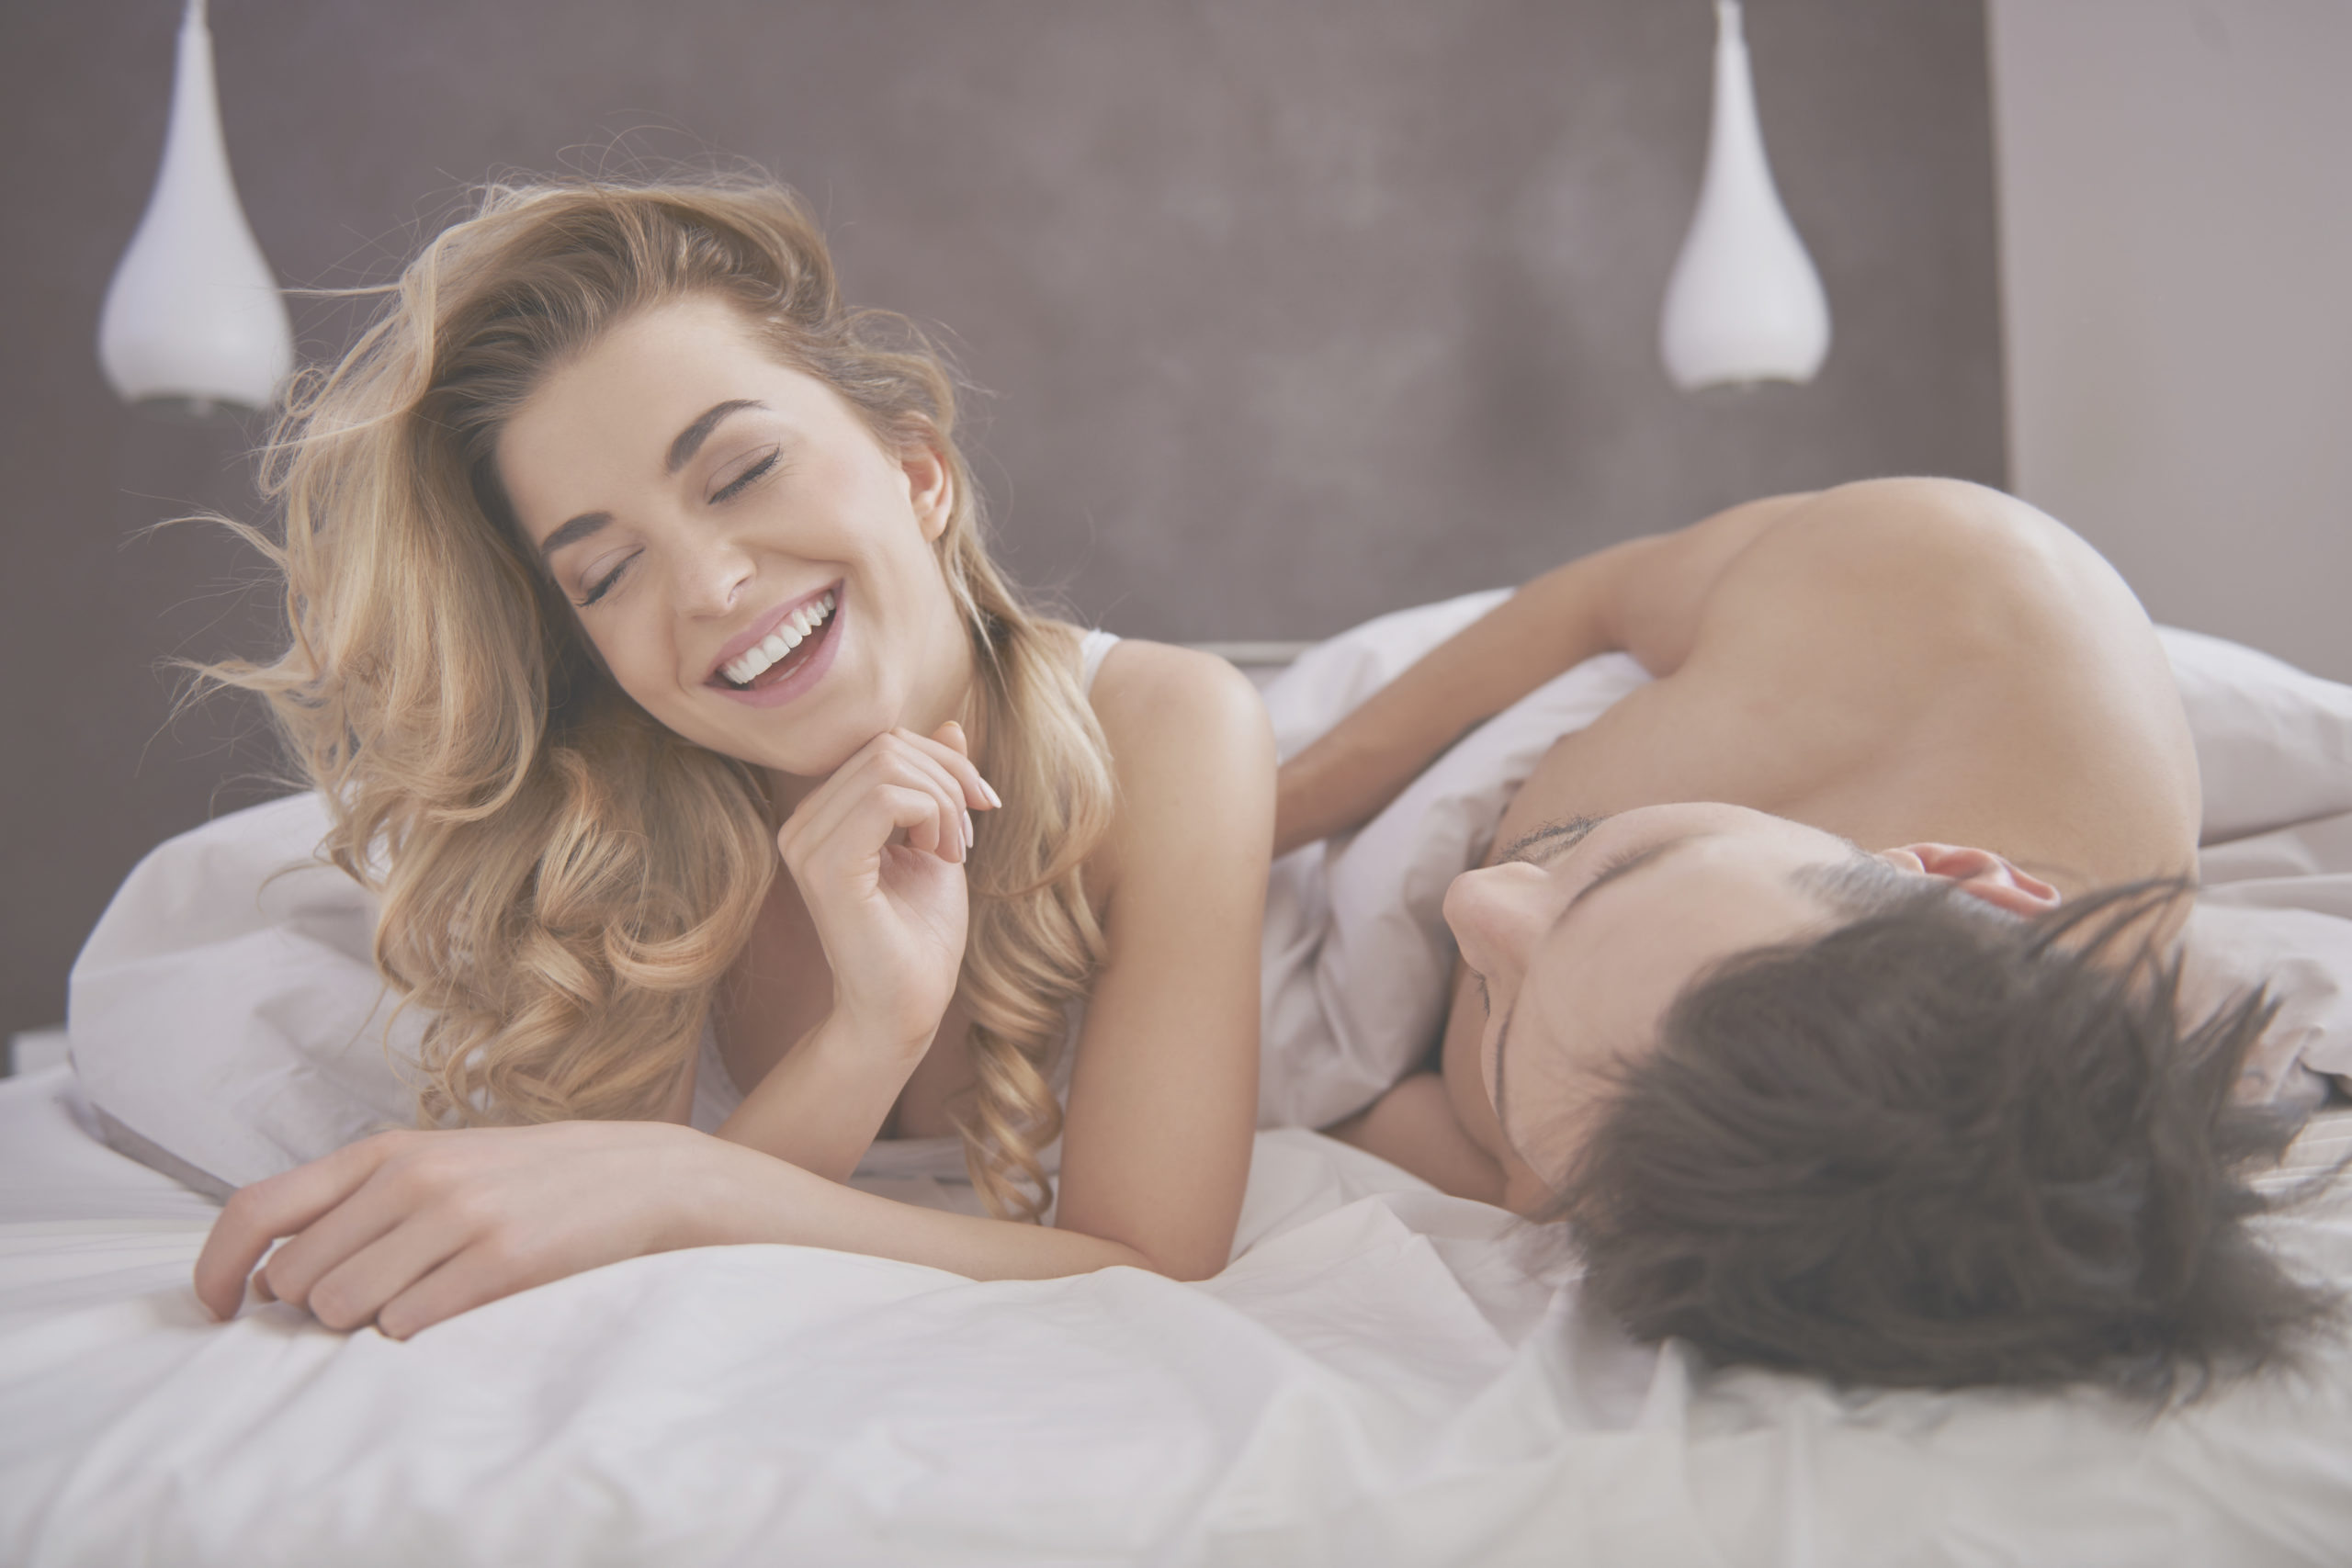 Woman smiling in bed next to man